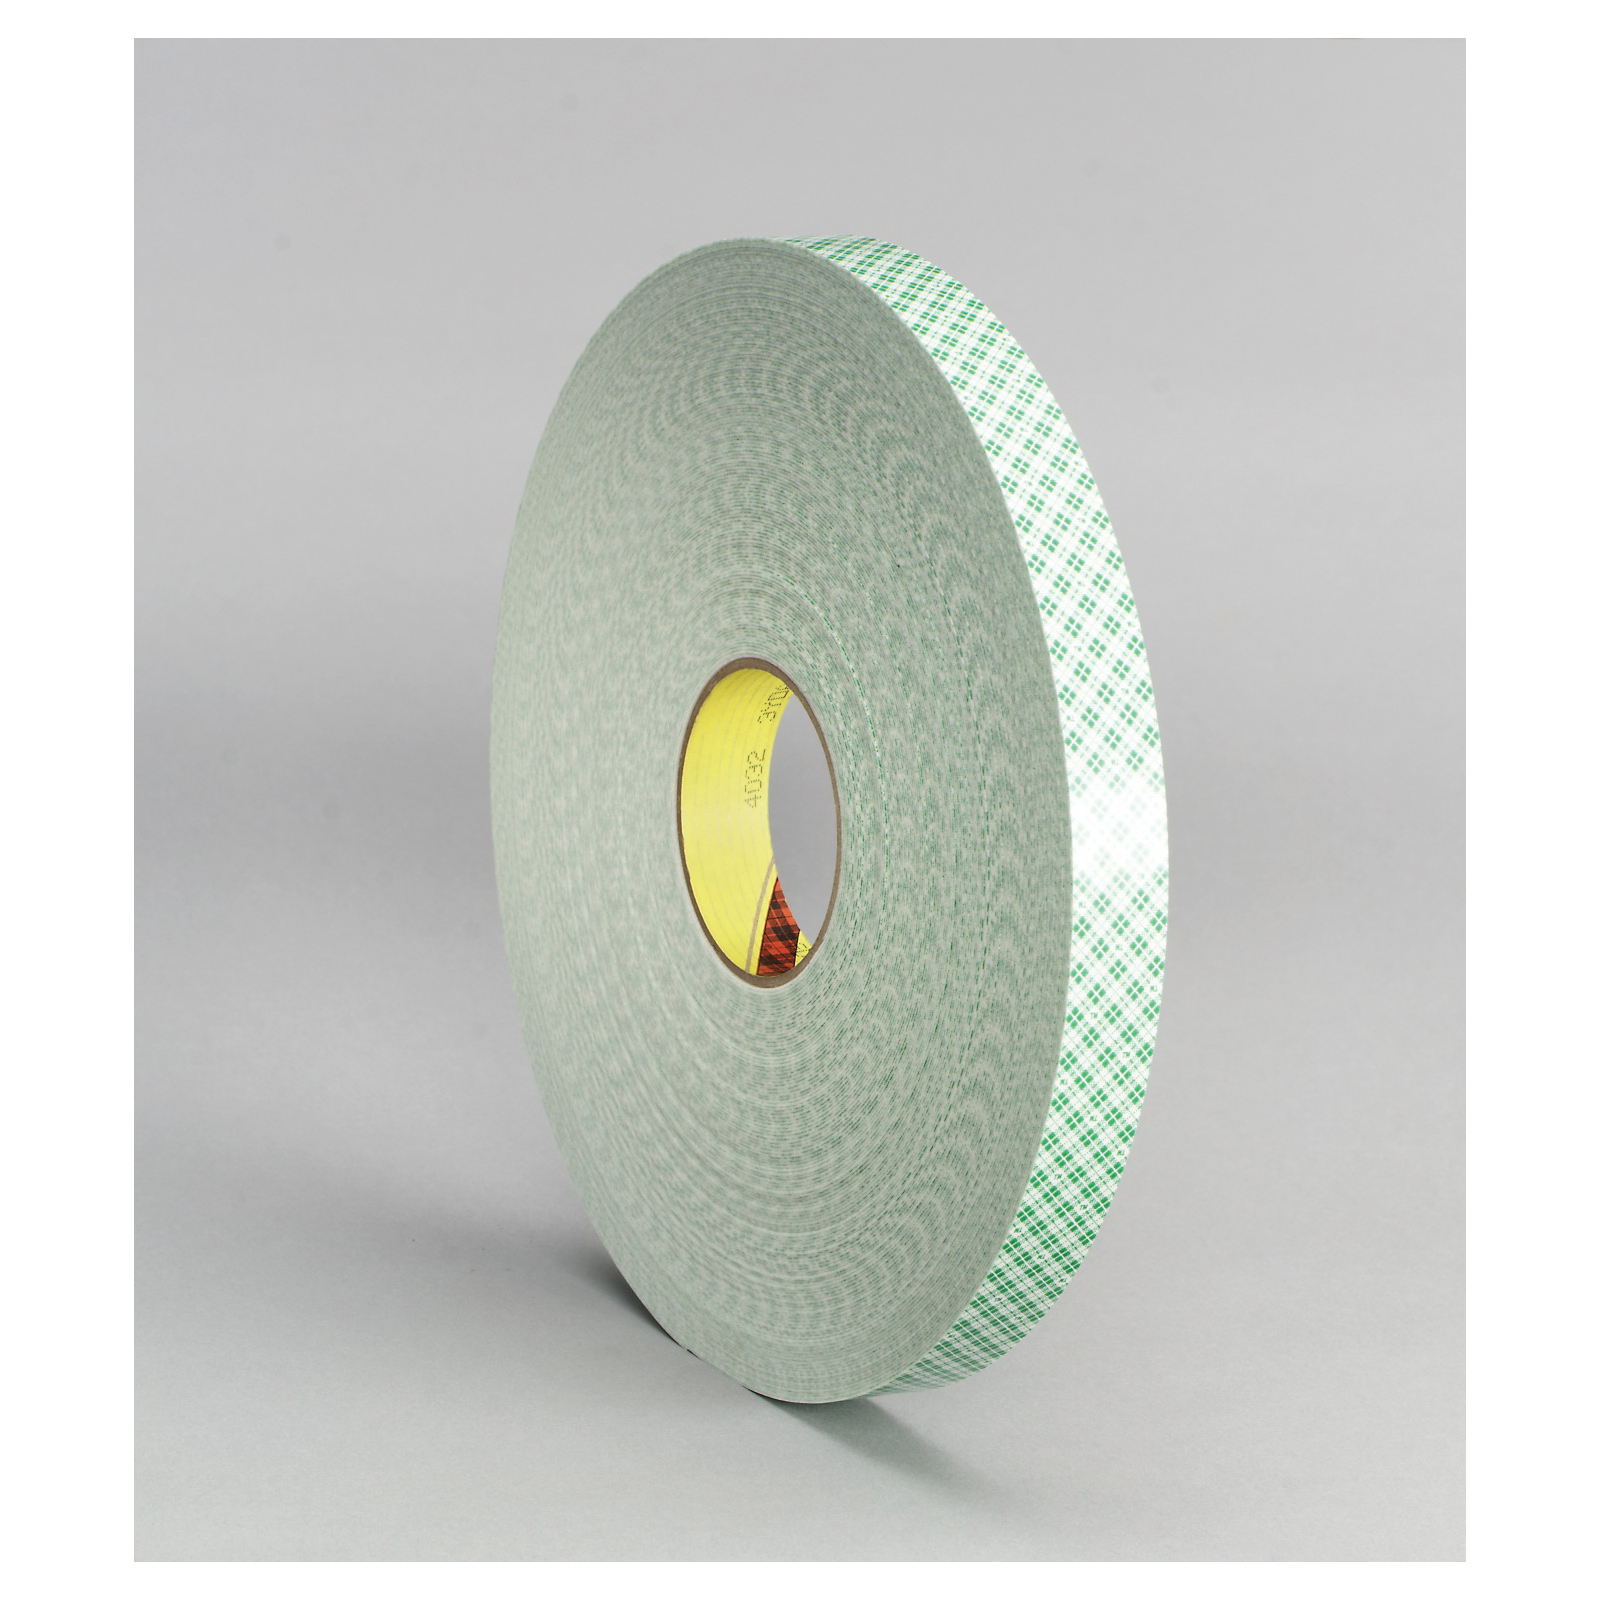 3M™ 021200-03368 Double Coated Tape, 72 yd L x 4 in W, 31 mil THK, Acrylic Adhesive, Urethane Foam Backing, Off-White